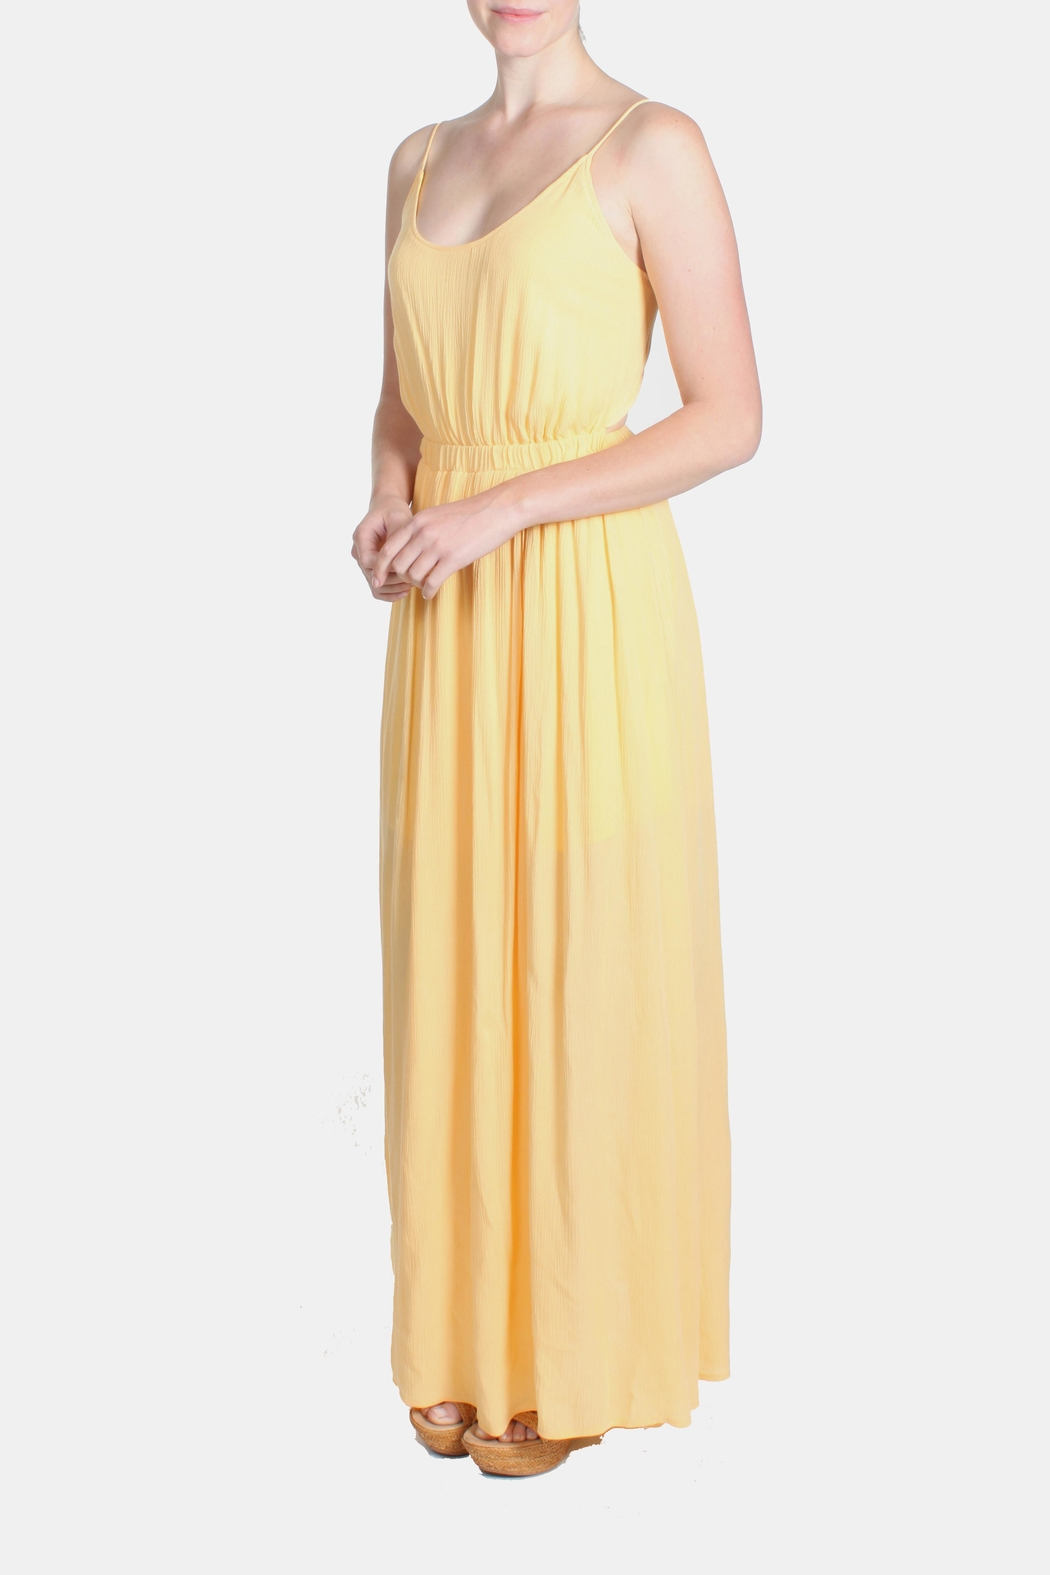 rokoko Yellow Corset Dress - Side Cropped Image